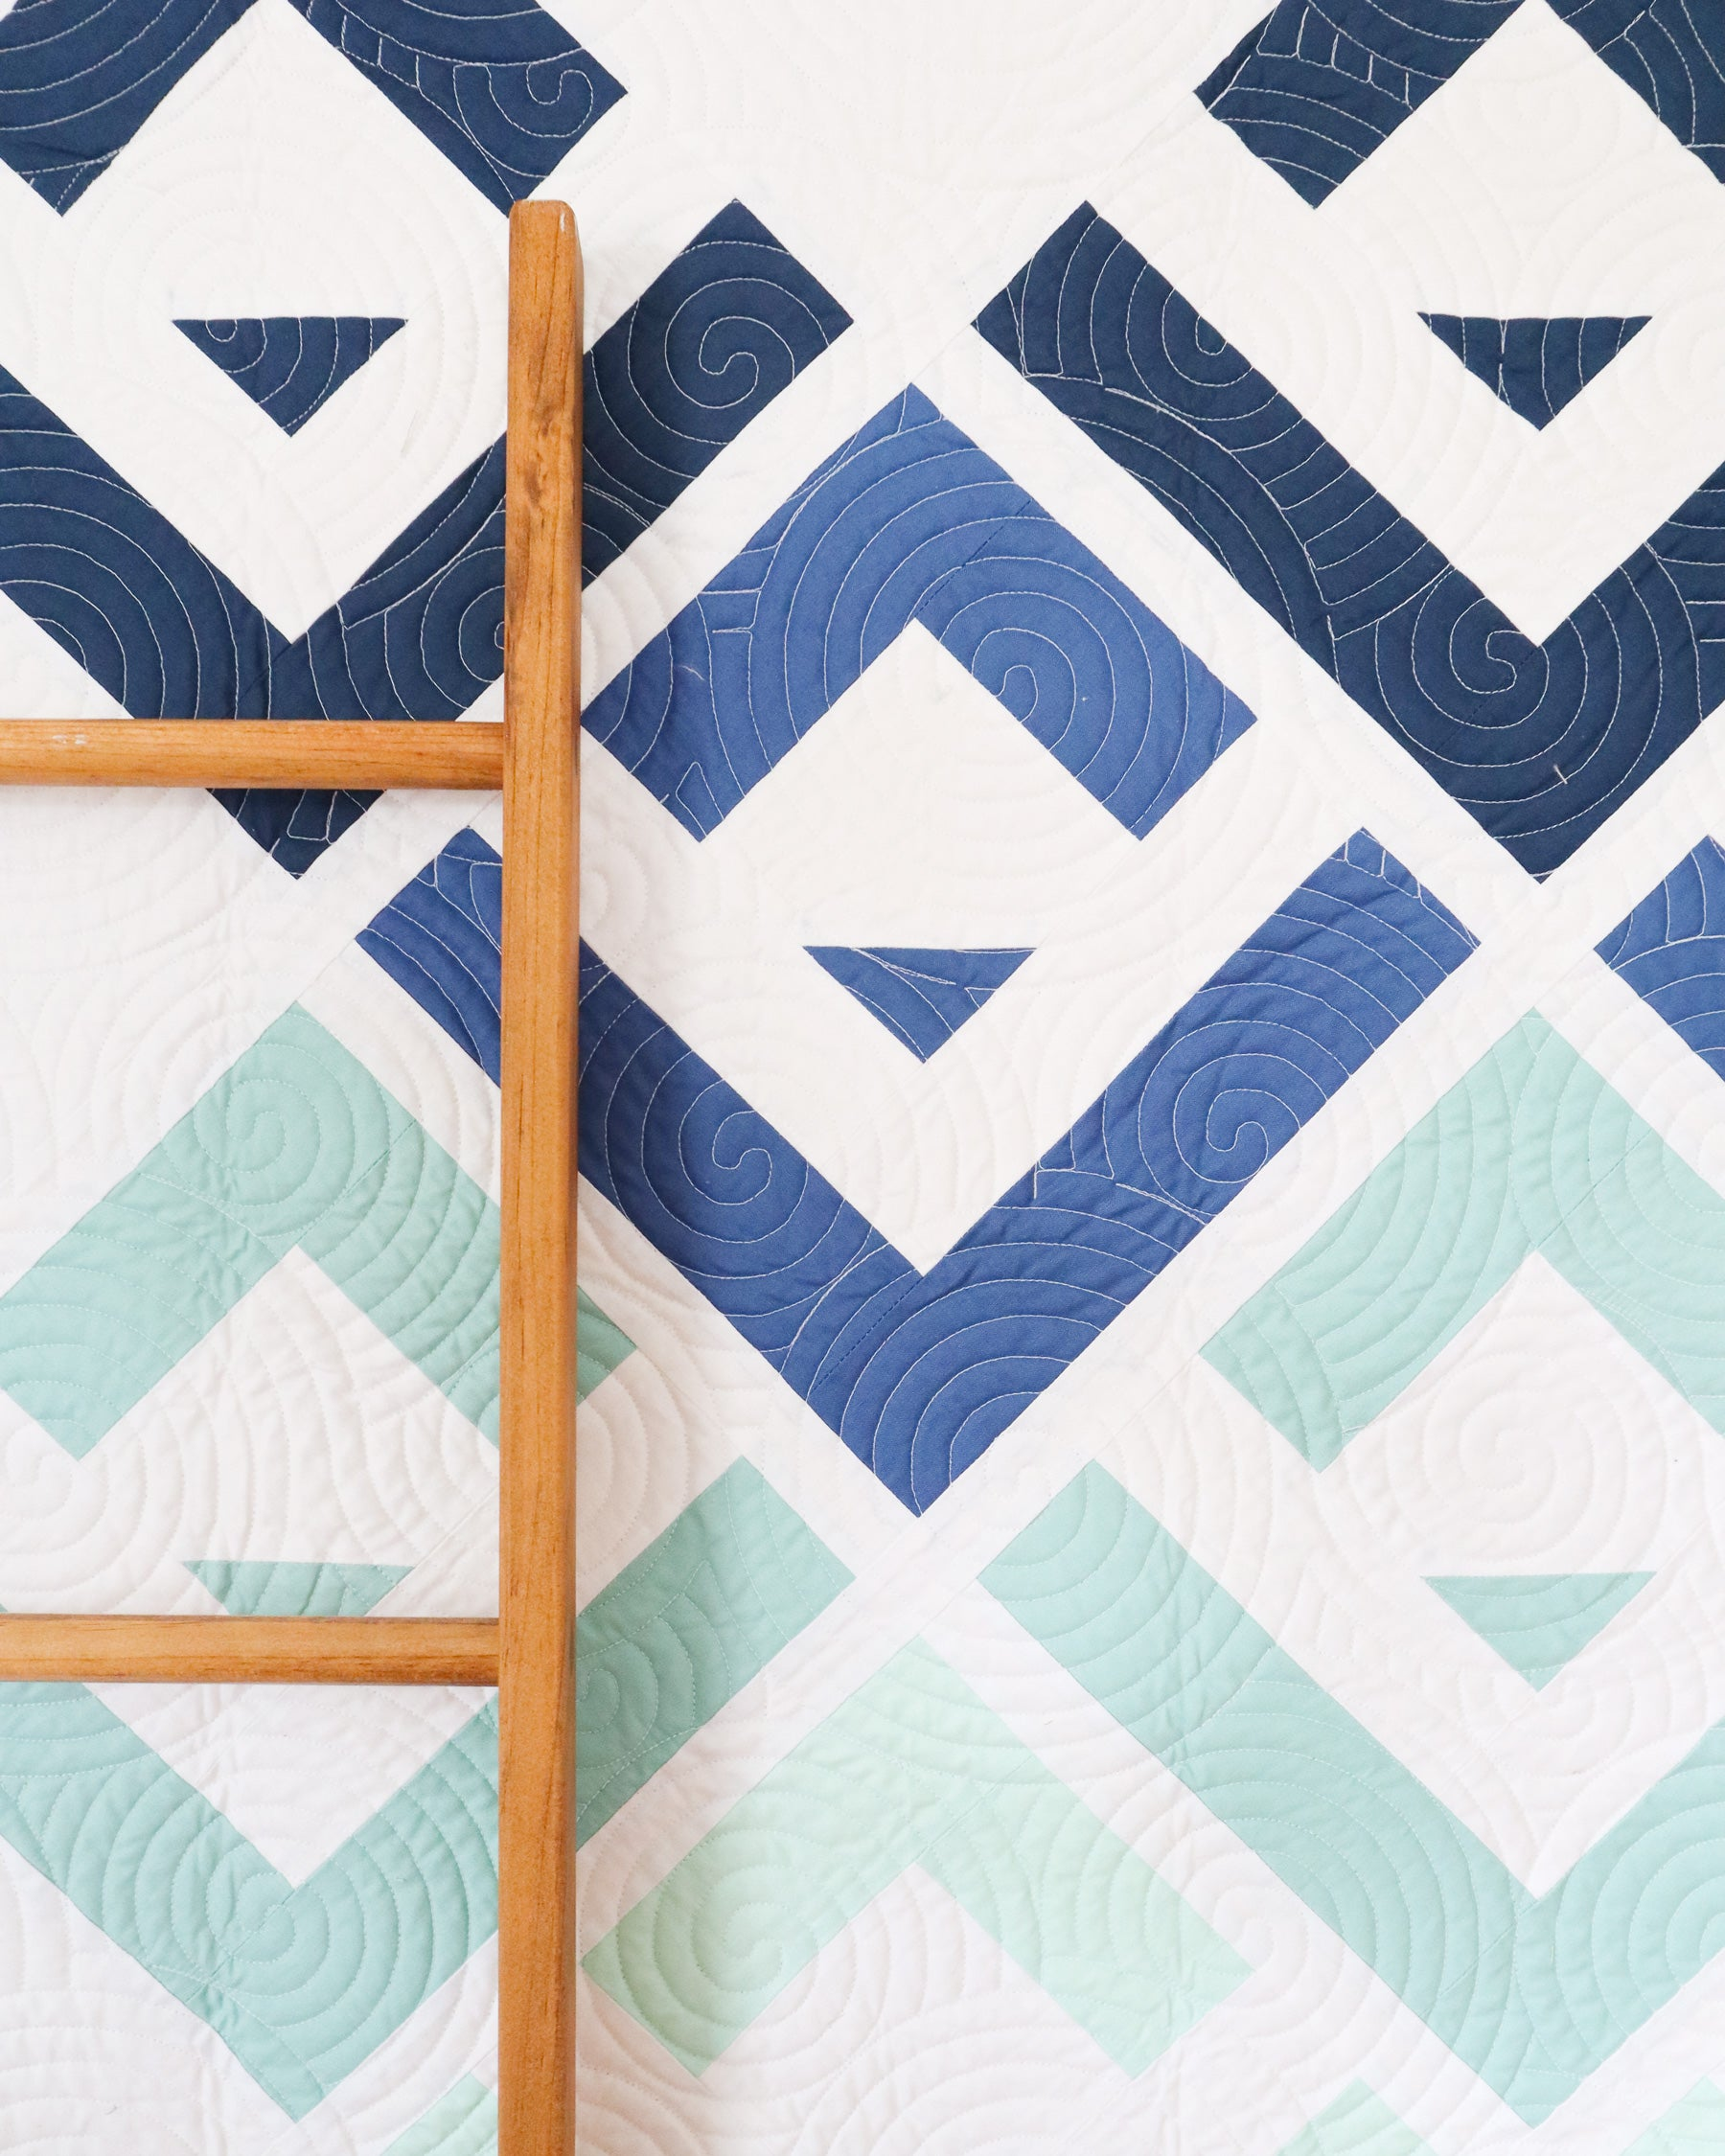 Cabin Valley quilt by Cotton and Joy